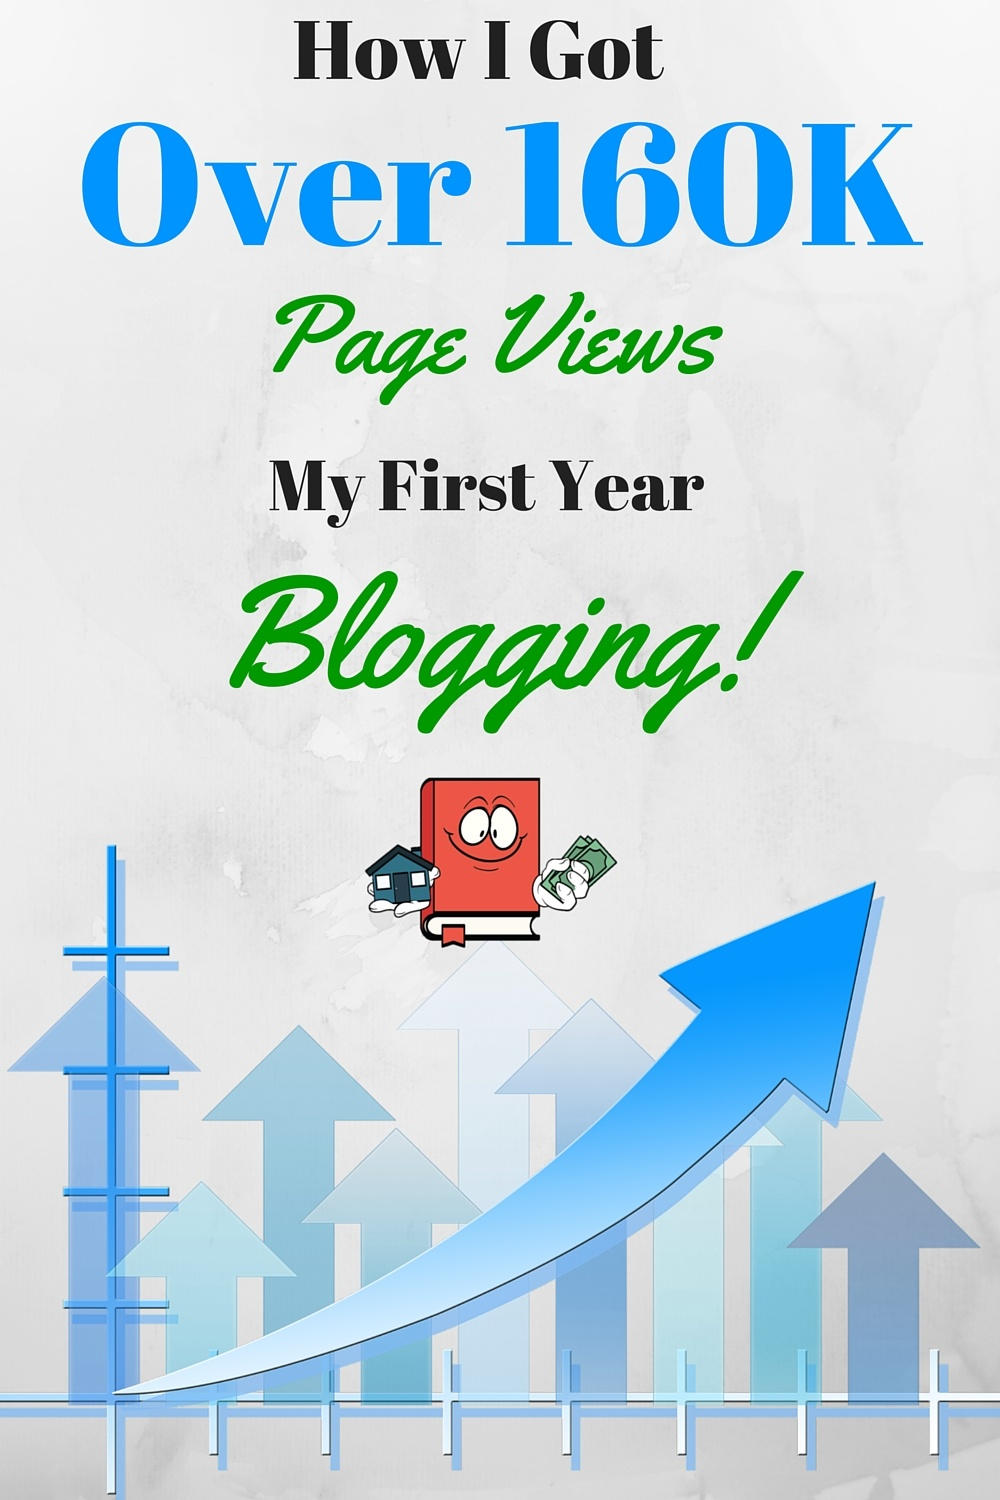 page traffic after one year of blogging